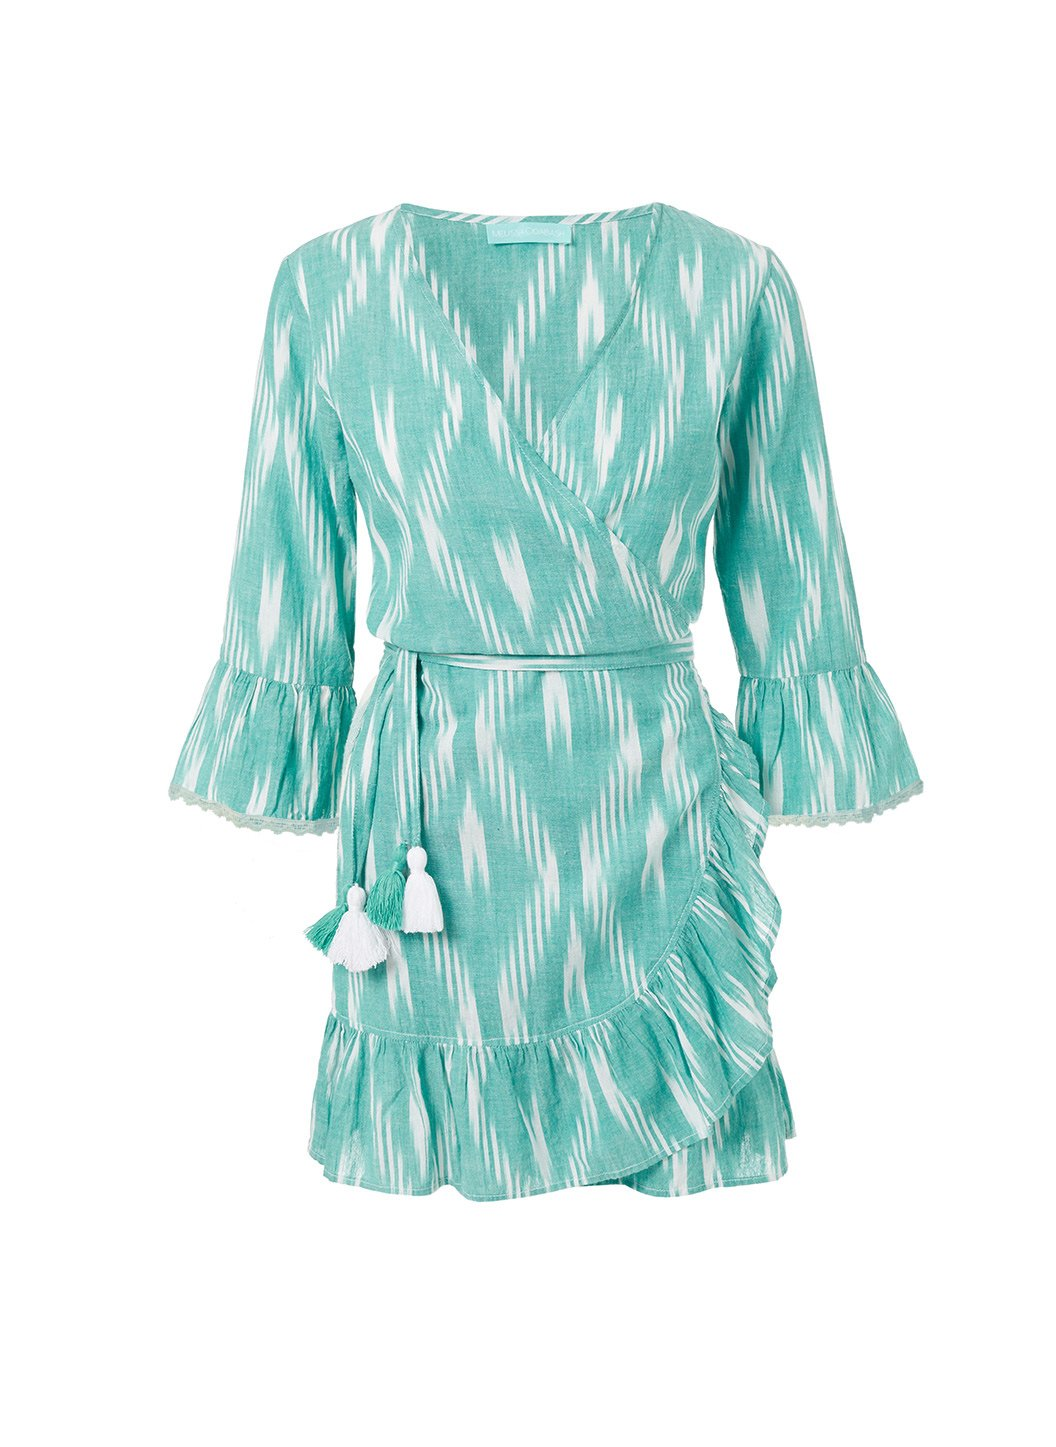 freya green ikat short belted wrap dress 2019